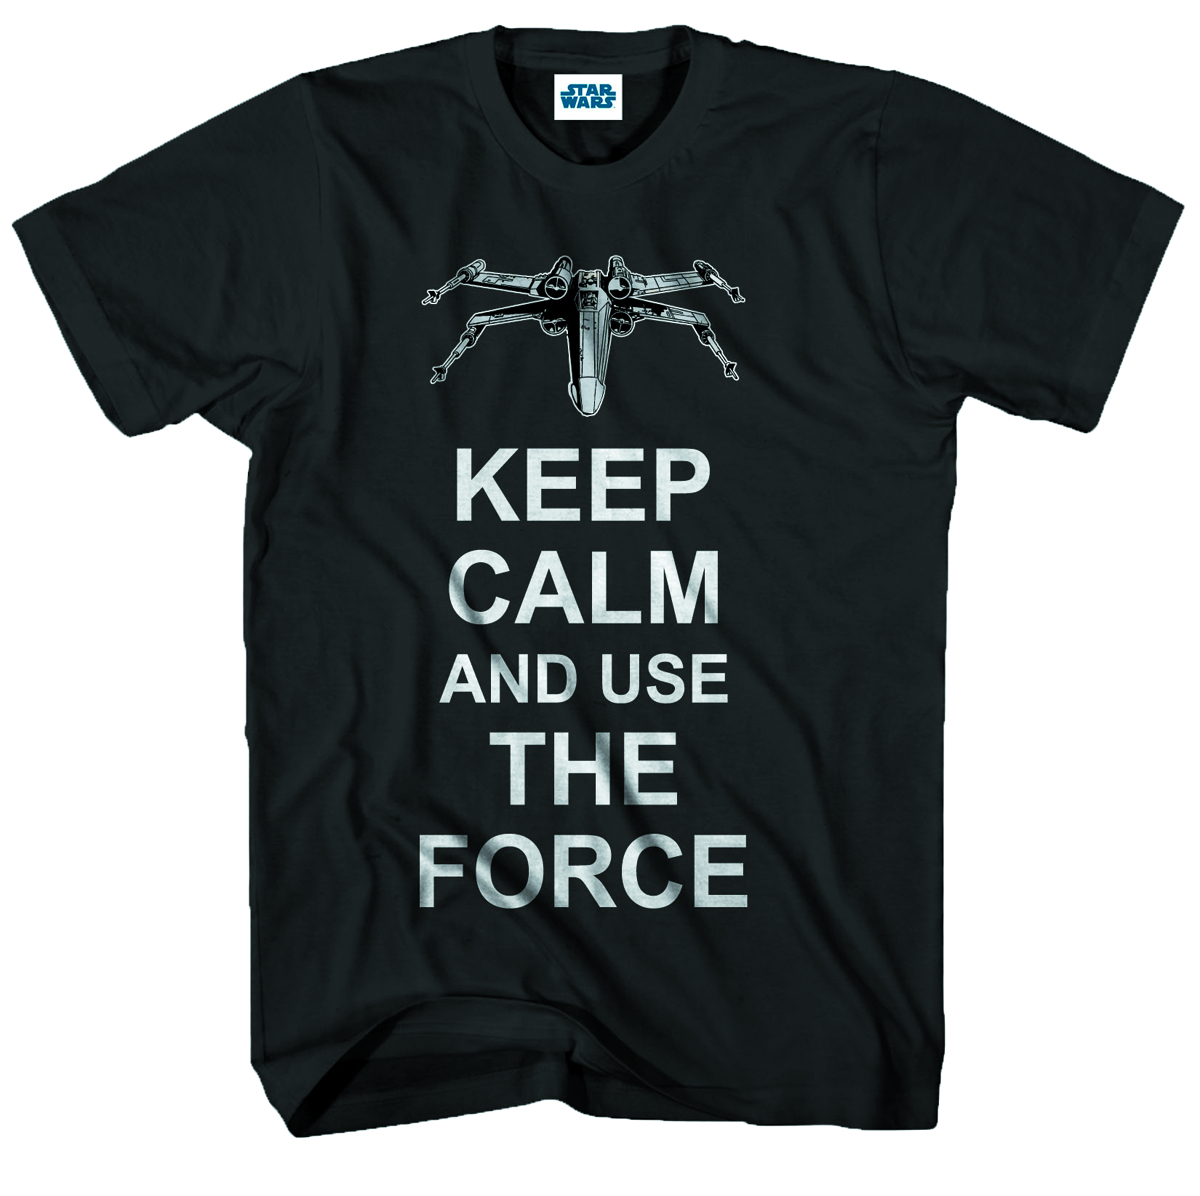 STAR WARS CALM FORCE BLK T/S MED